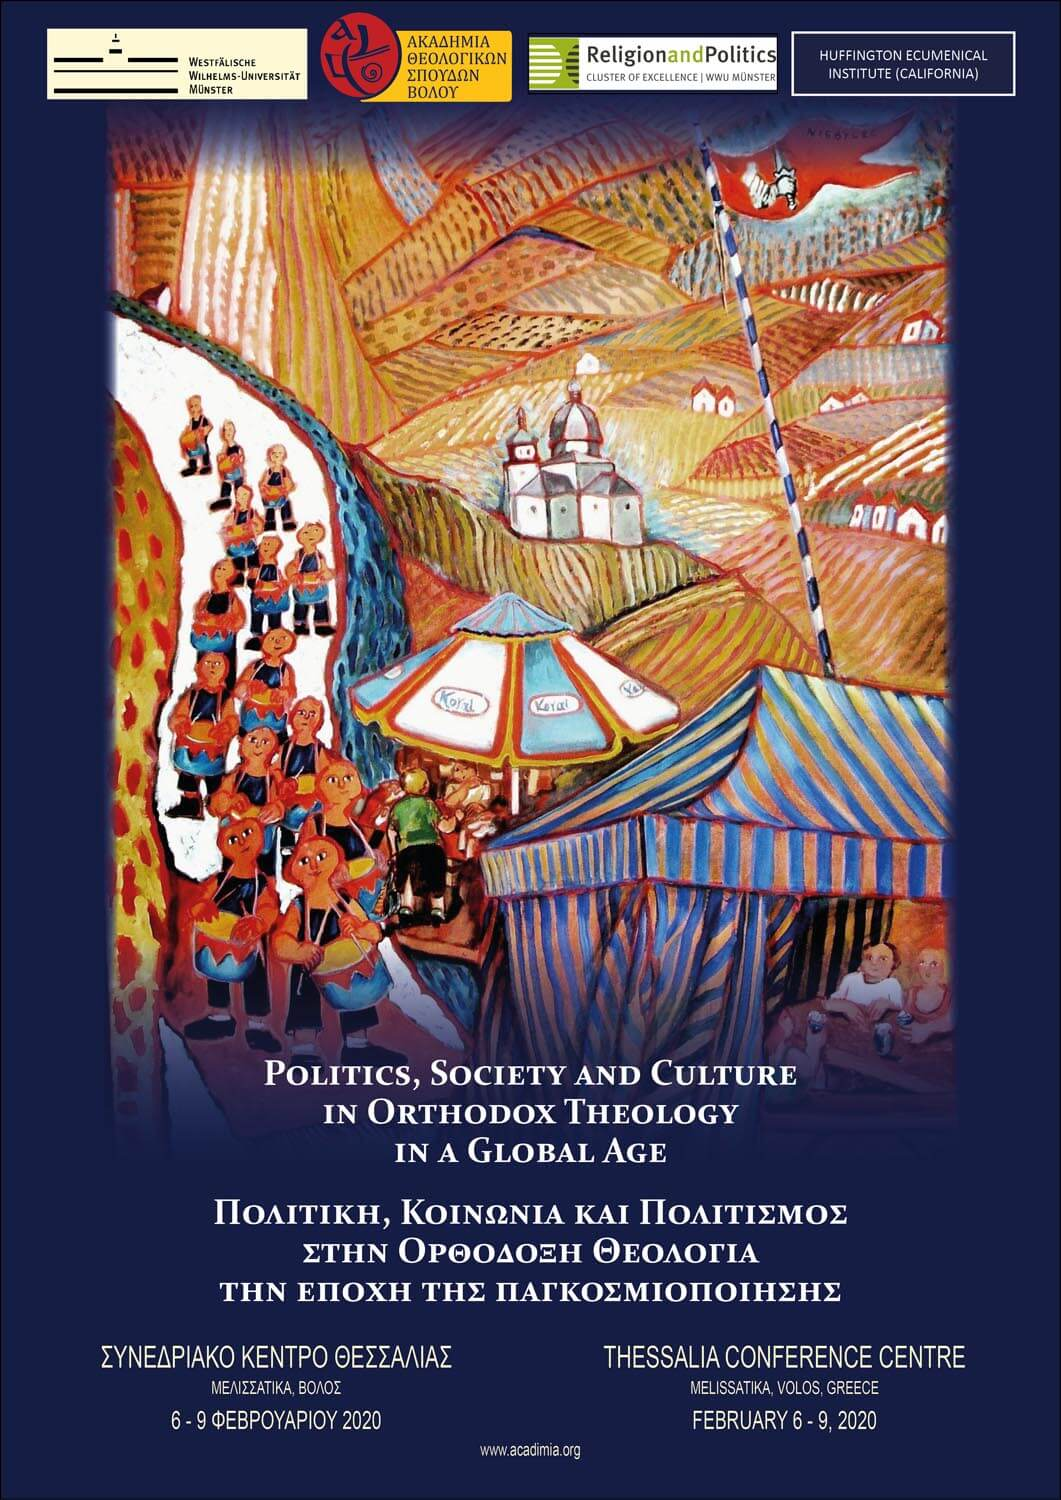 Politics, Society and Culture in Orthodox Theology in a Global Age